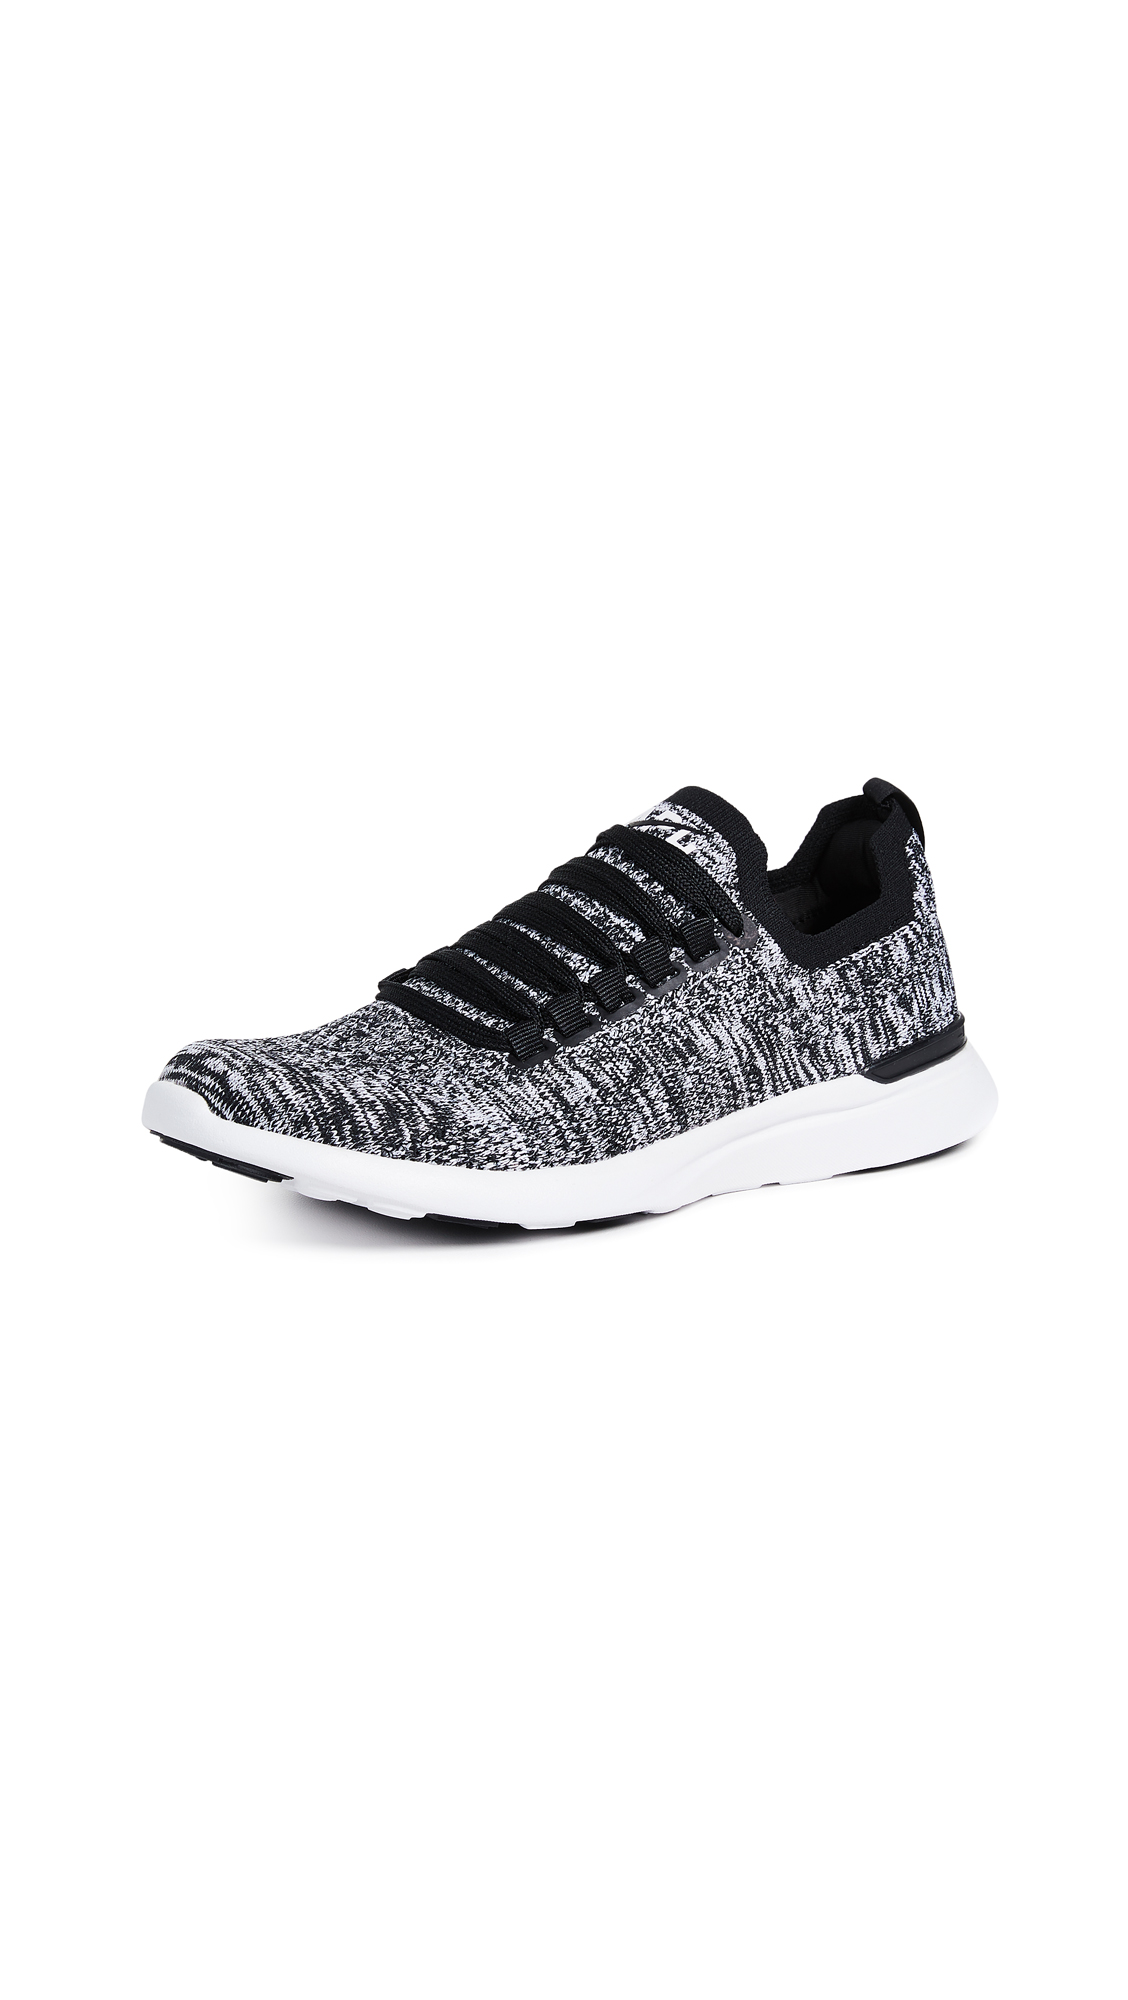 APL: Athletic Propulsion Labs TechLoom Breeze Sneakers - Black/White/Melange